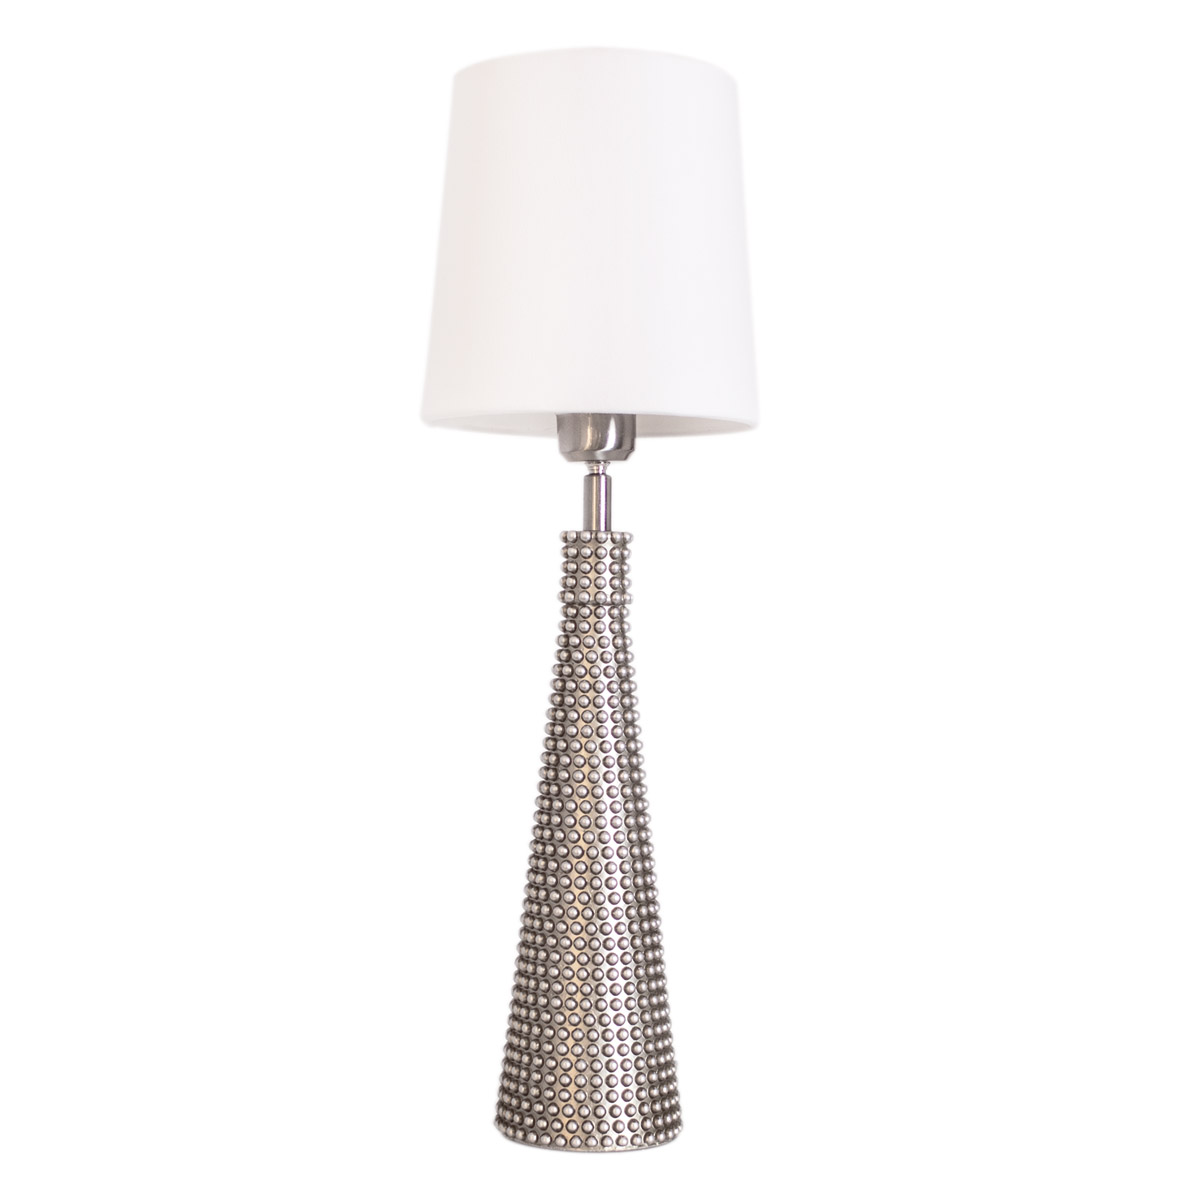 Lofty Slim Table Lamp 54 cm, Satin